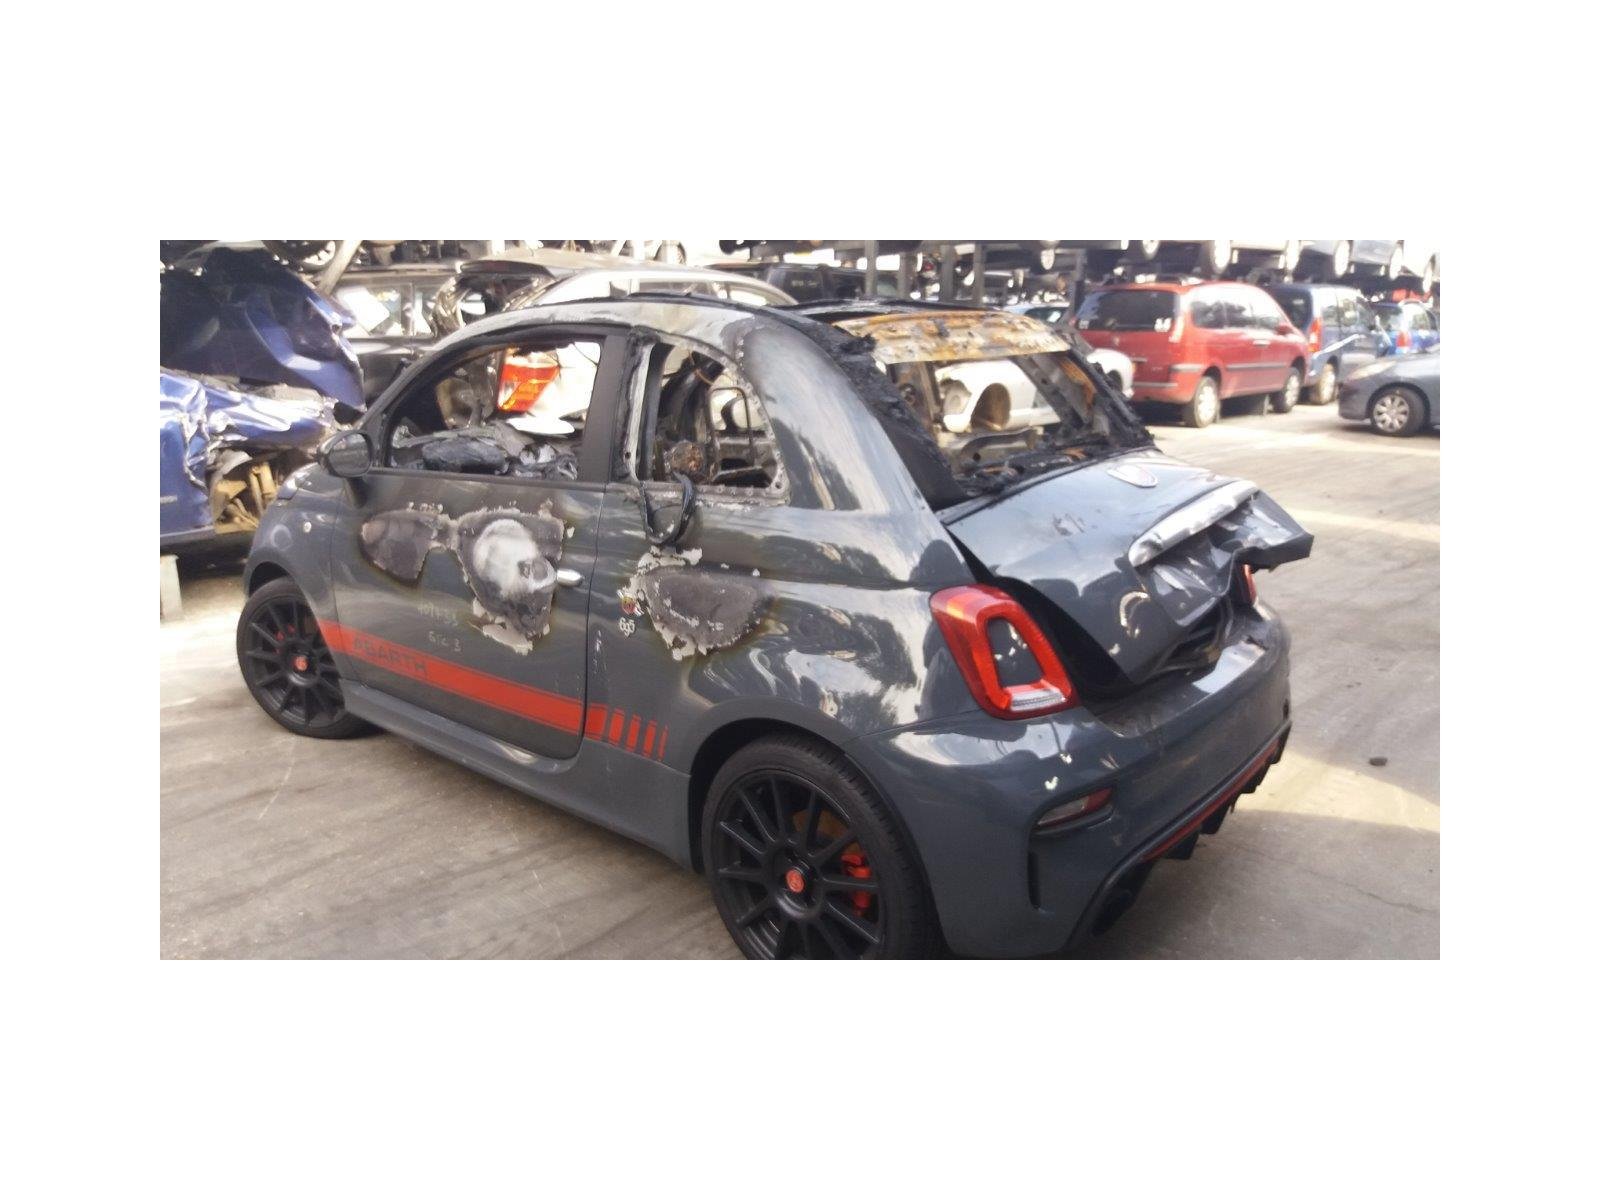 Fiat 500 Abarth 2016 On 695 Xsr Yamaha Limited Edition T Jet 2 Door Grande Punto Fuse Box Glove Compartment Cabriolet Scrap Salvage Car For Sale Auction Silverlake Autoparts